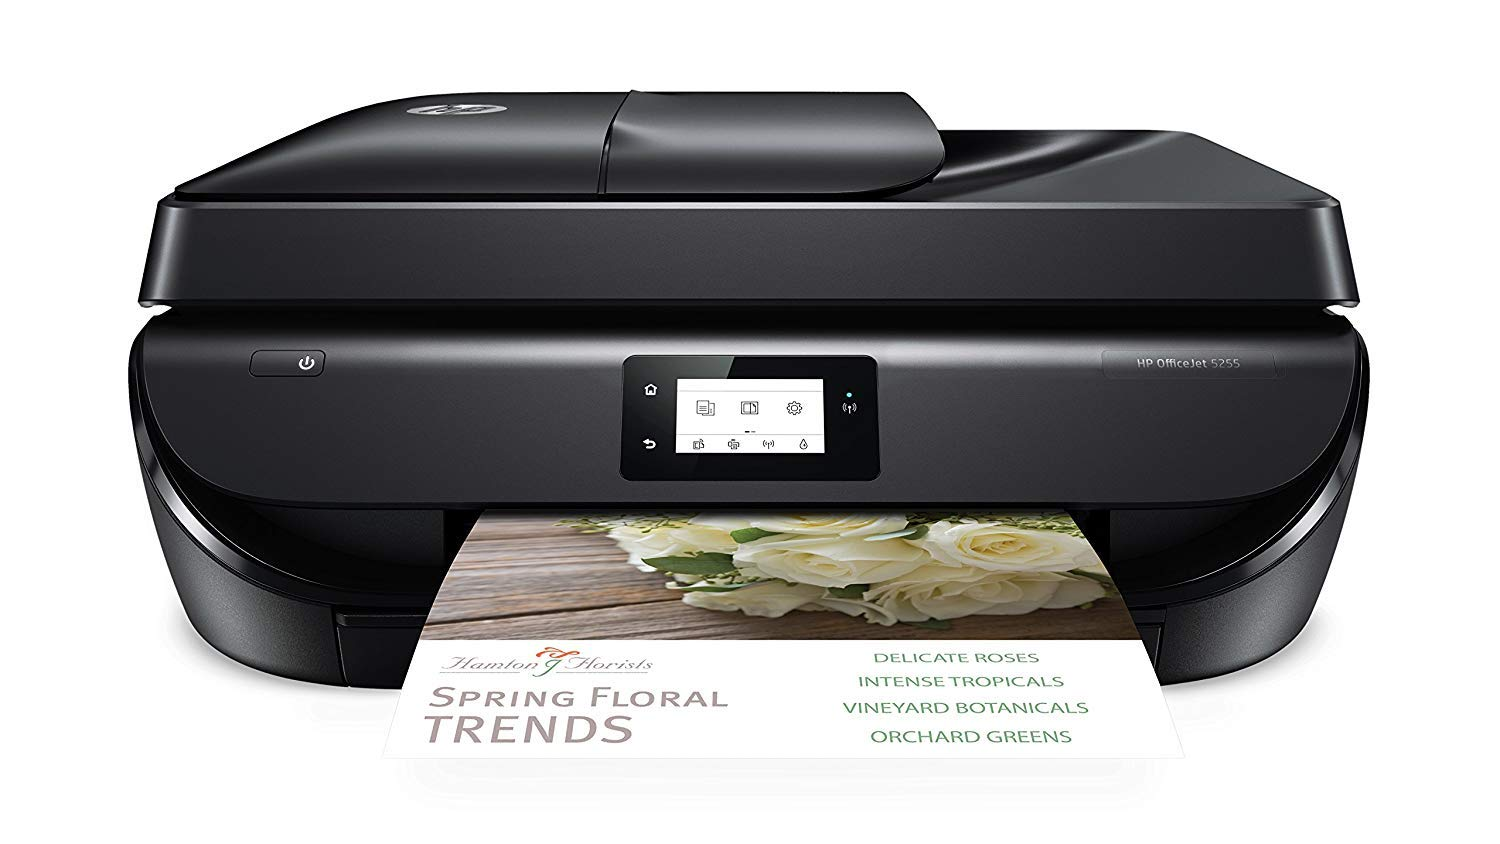 Hp Officejet 5255 Wireless All-In-One Printer, Hp Instant Ink & Amazon Dash Replenishment Ready (M2U75A), Black by HP